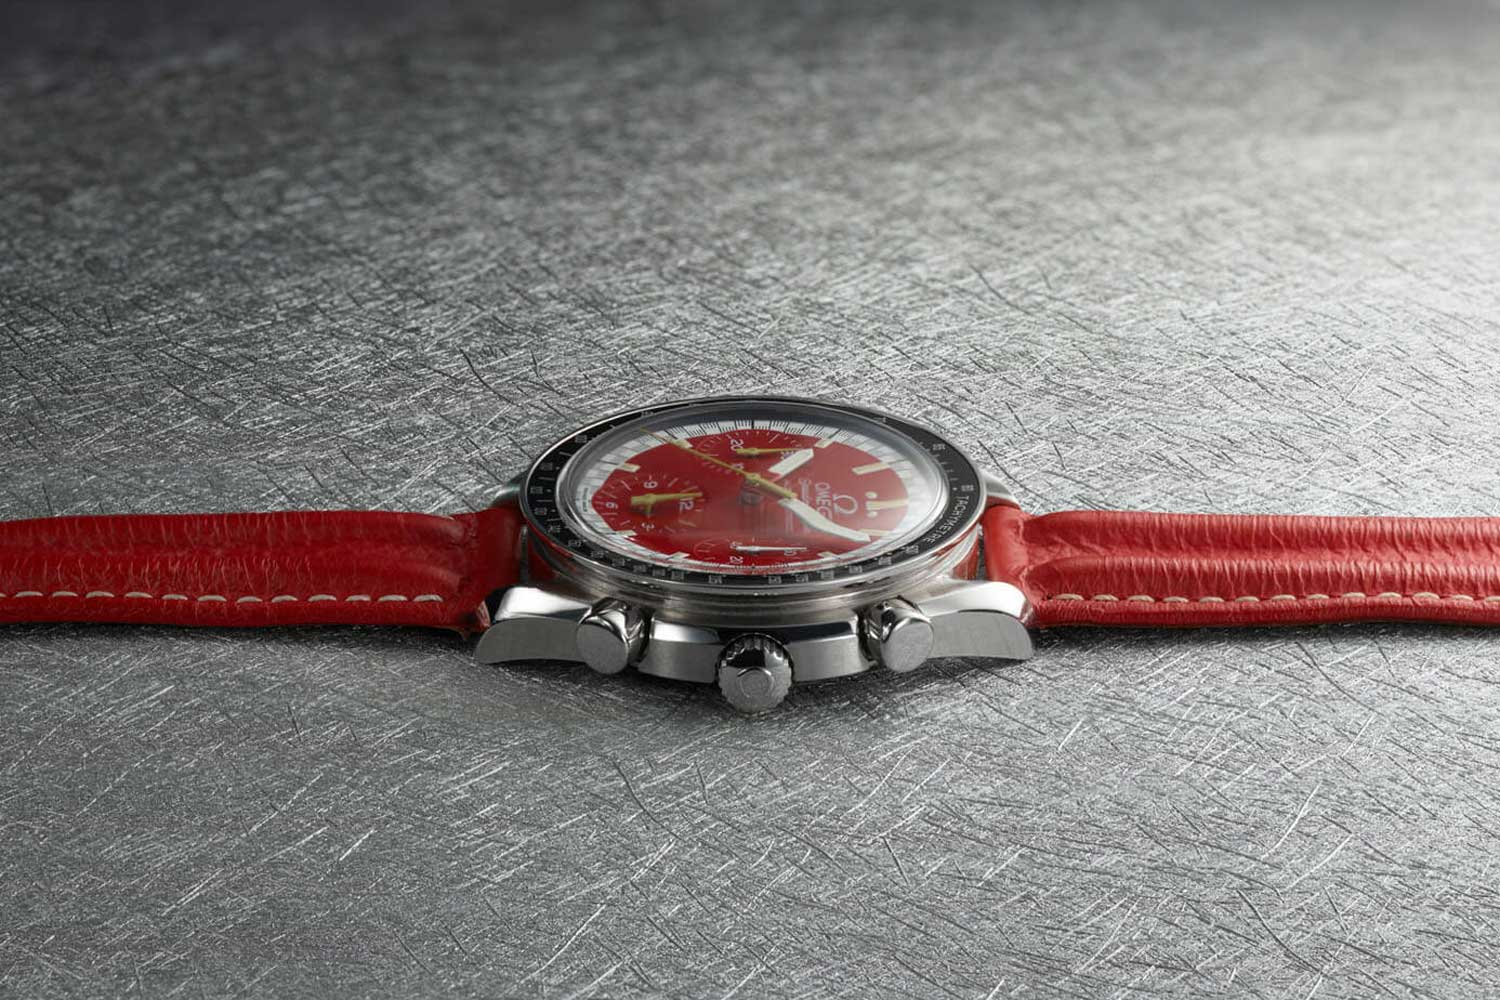 1996 Racing Speedmaster Reduced Launched by Michael Schumacher on a specially produced double ridged leather strap (Image: omegawatches.com)